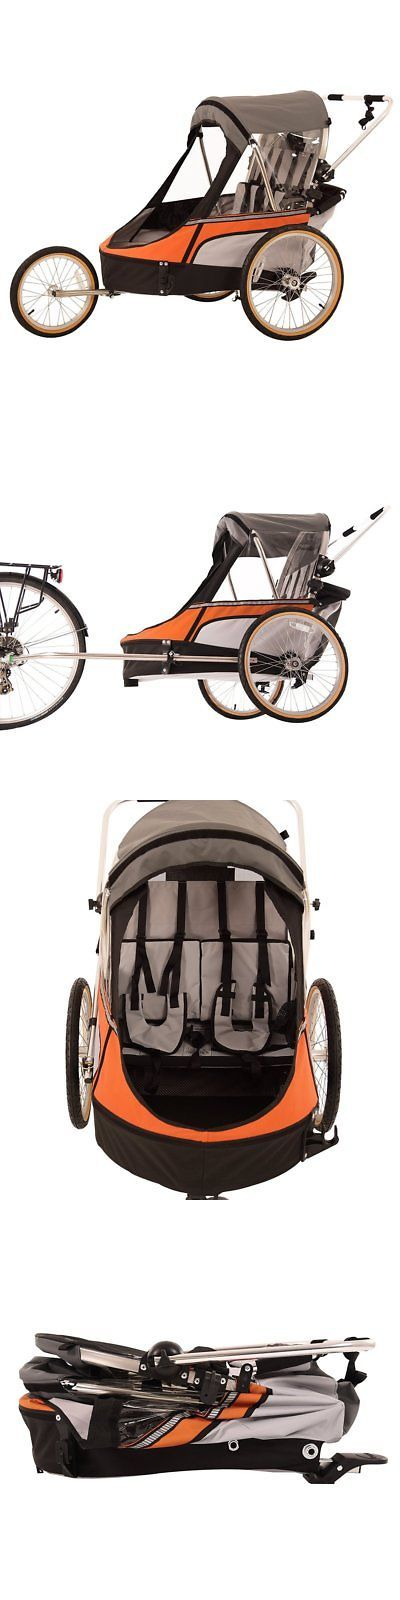 Trailers 85040: New Wike Premium Double 3-In-1 Bike Trailer Stroller Jogger Orange And Gray -> BUY IT NOW ONLY: $474 on eBay!